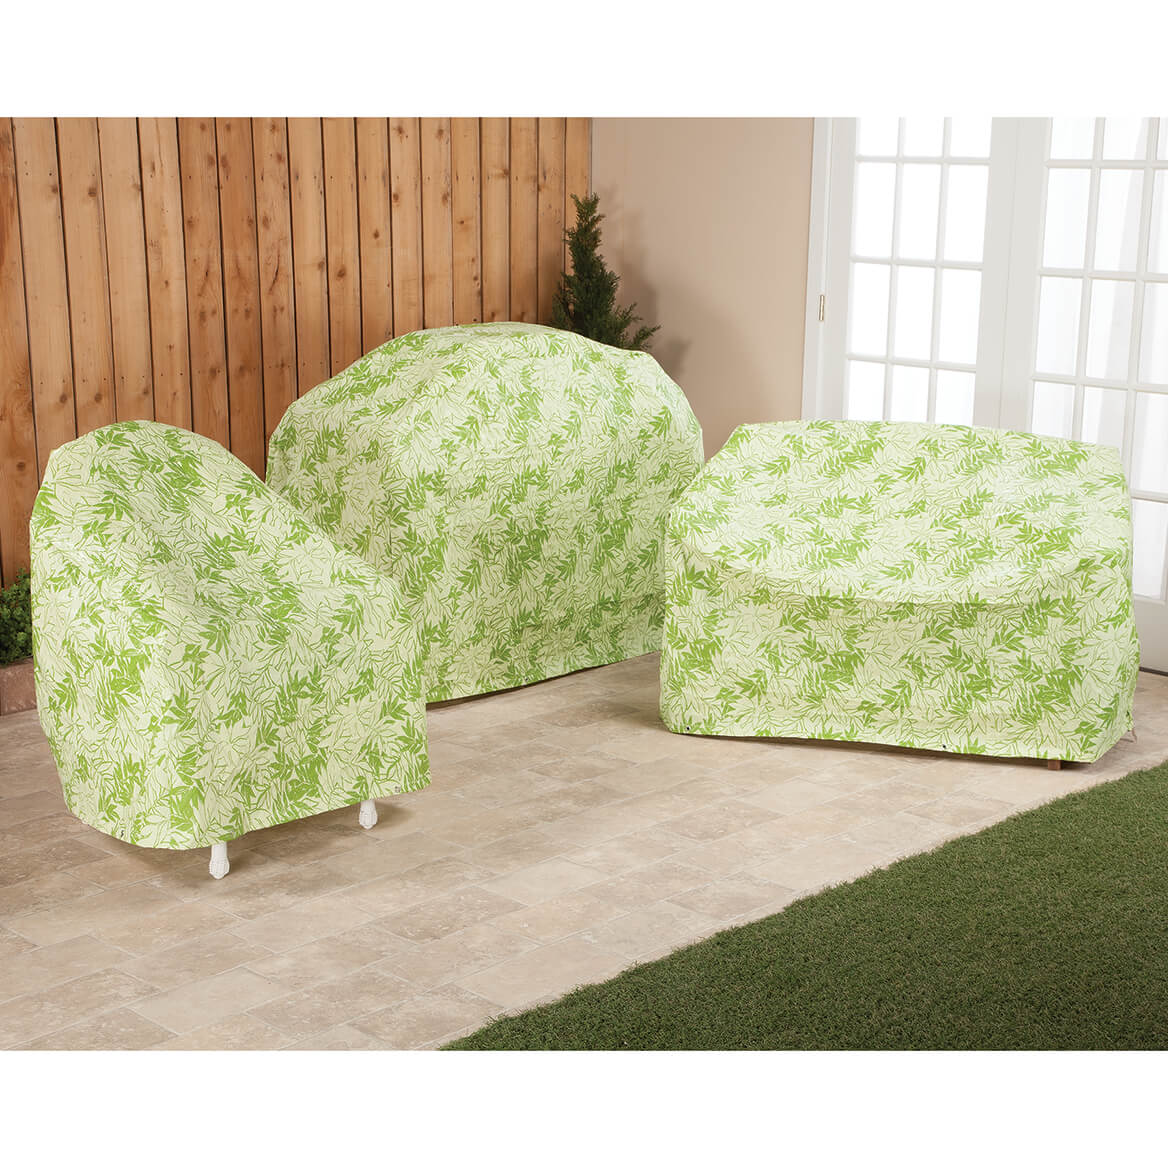 Quilted Lounge Chair Covers Leaf Pattern Quilted Lounge Cover